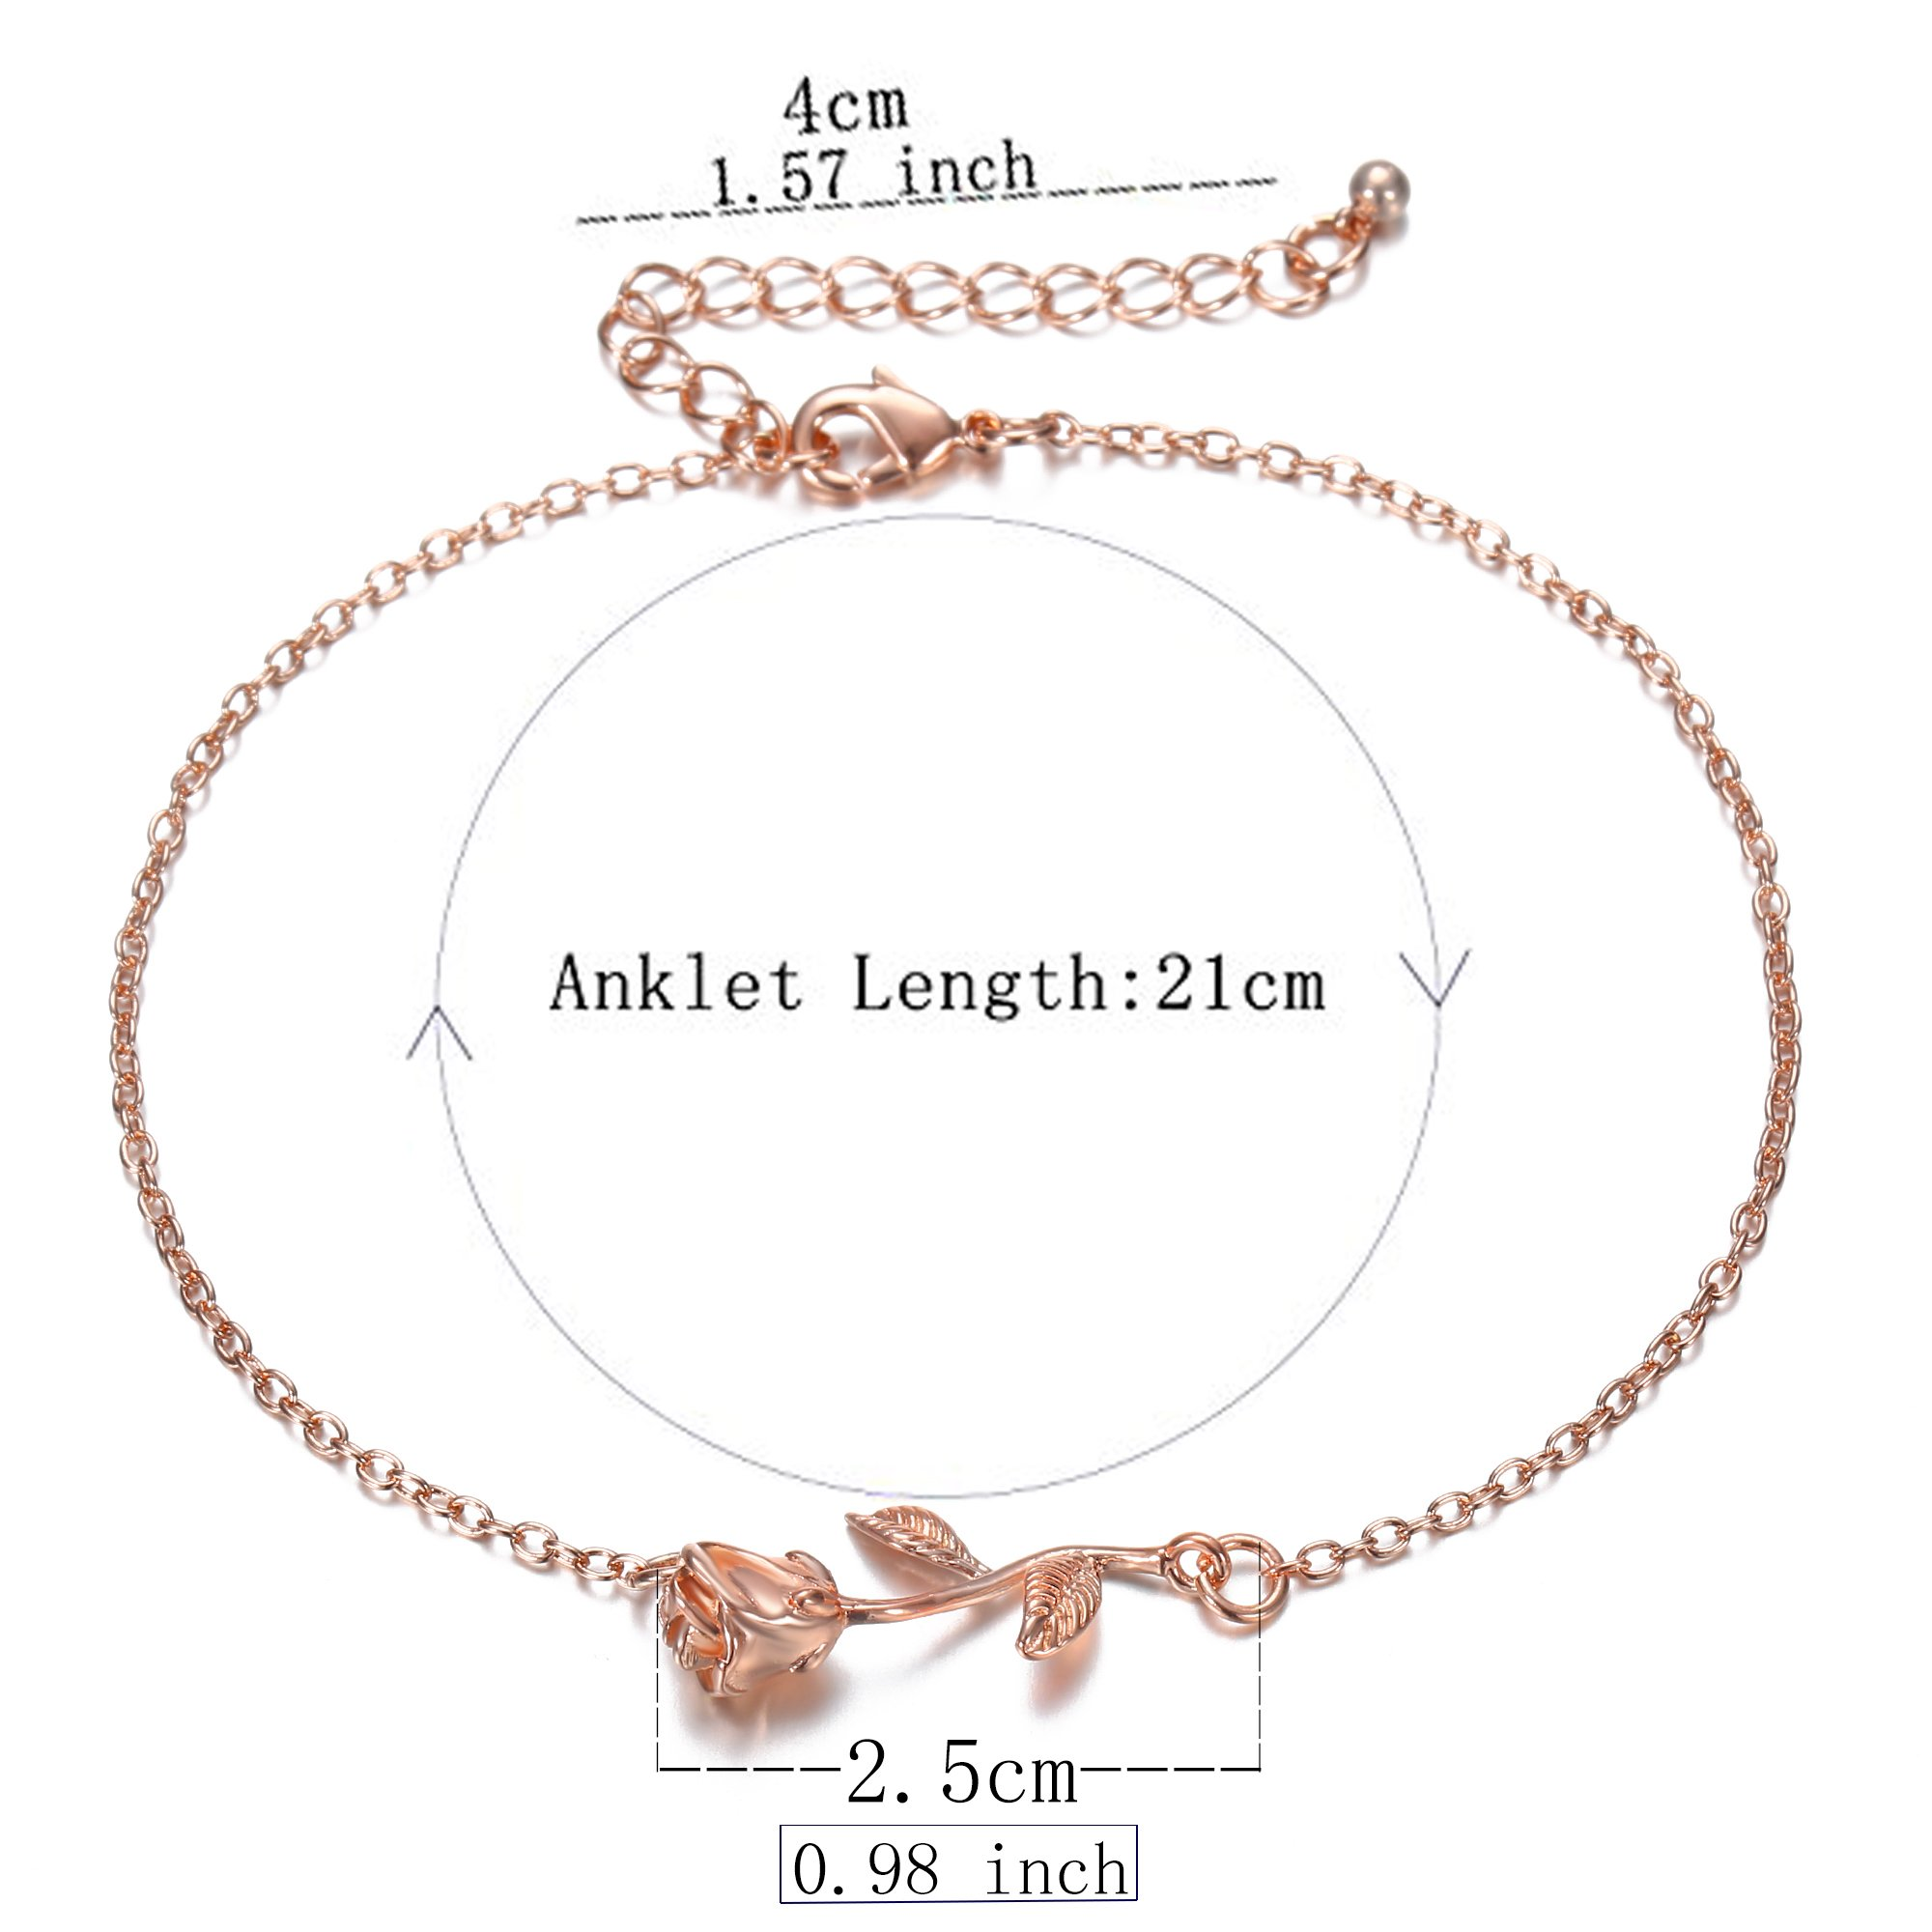 3UMeter Rose Women Girls Anklets Jewelry Exquisite Rose Gold Electroplate Brass Anklets Female, Great Foot Decoration Gift Valentine Mother's Day Birthday by 3UMeter (Image #5)